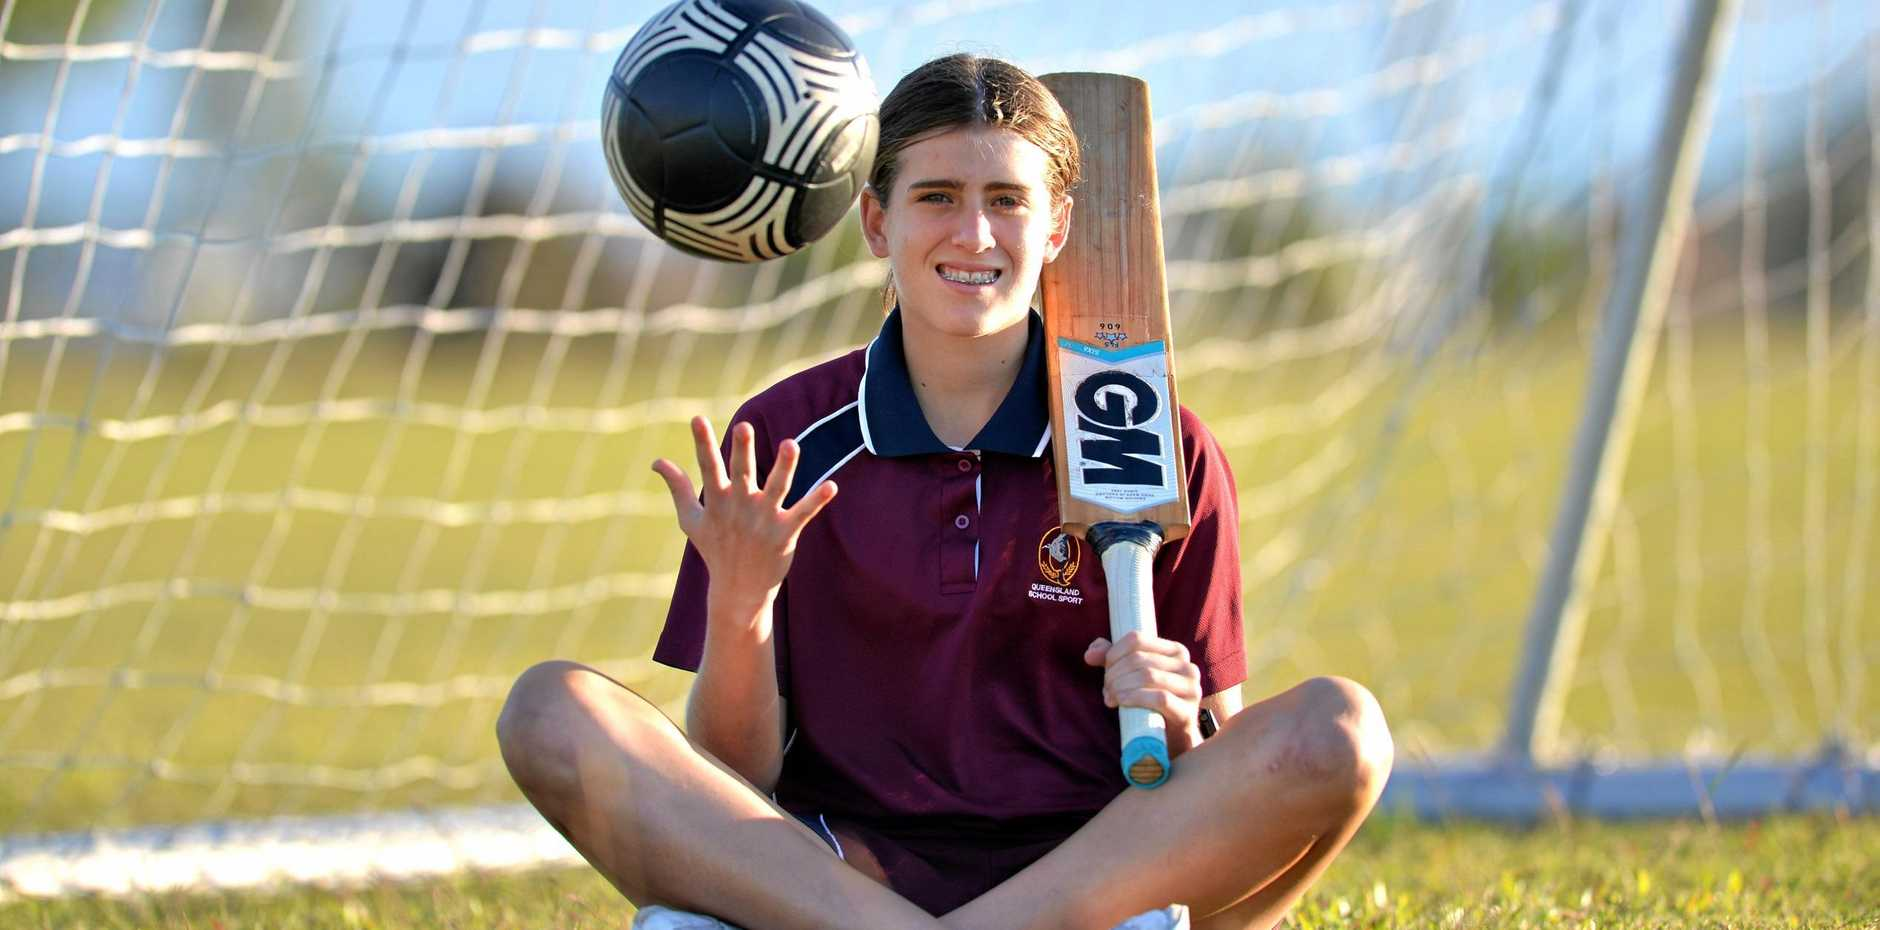 Pioneer Valley's Ryleigh Wotherspoon is set to become the first female in Mackay Cricket history to play first grade.